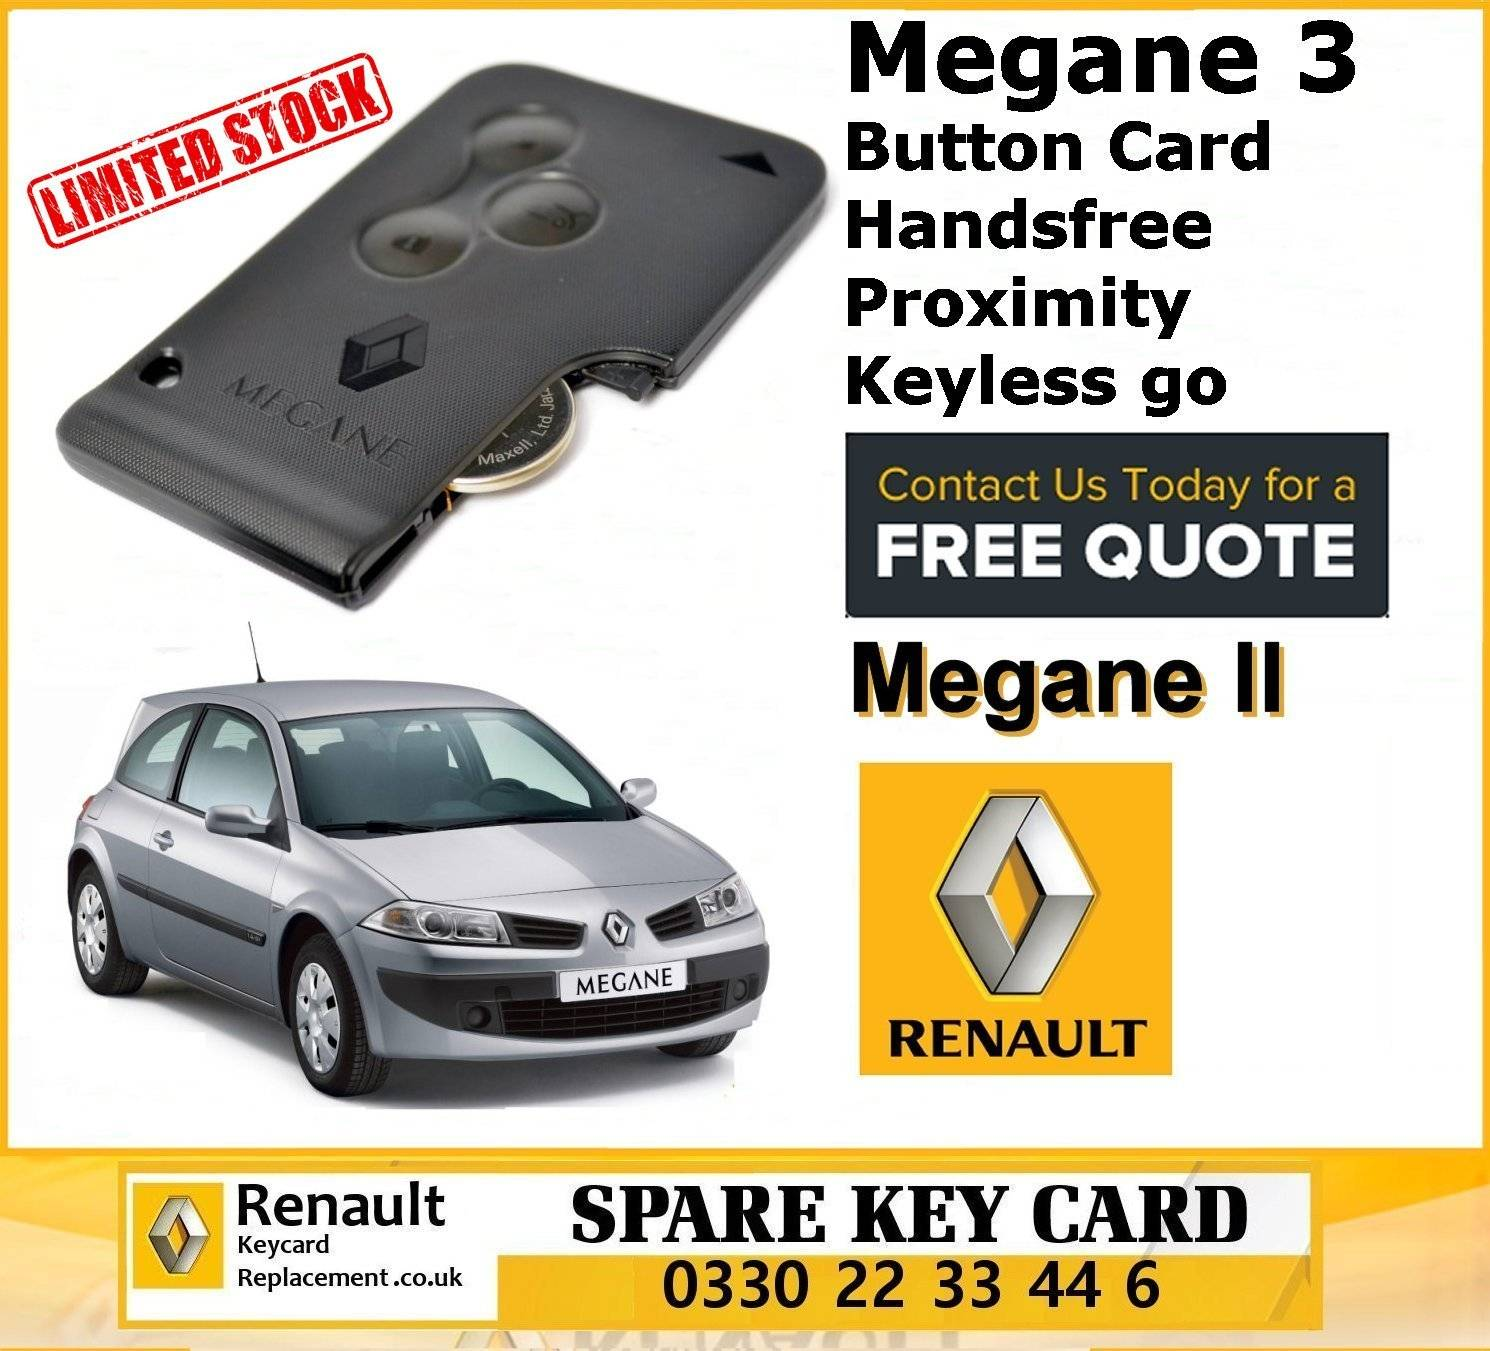 Renault Replacement Remote Key Card Stockport Bramhall, Bredbury, Cheadle, Gatley, Hazel Grove, Heaton Chapel, Heaton Mersey, Heaton Moor, Heaton Norris, Marple, Marple Bridge, Mellor, Reddish, Romiley